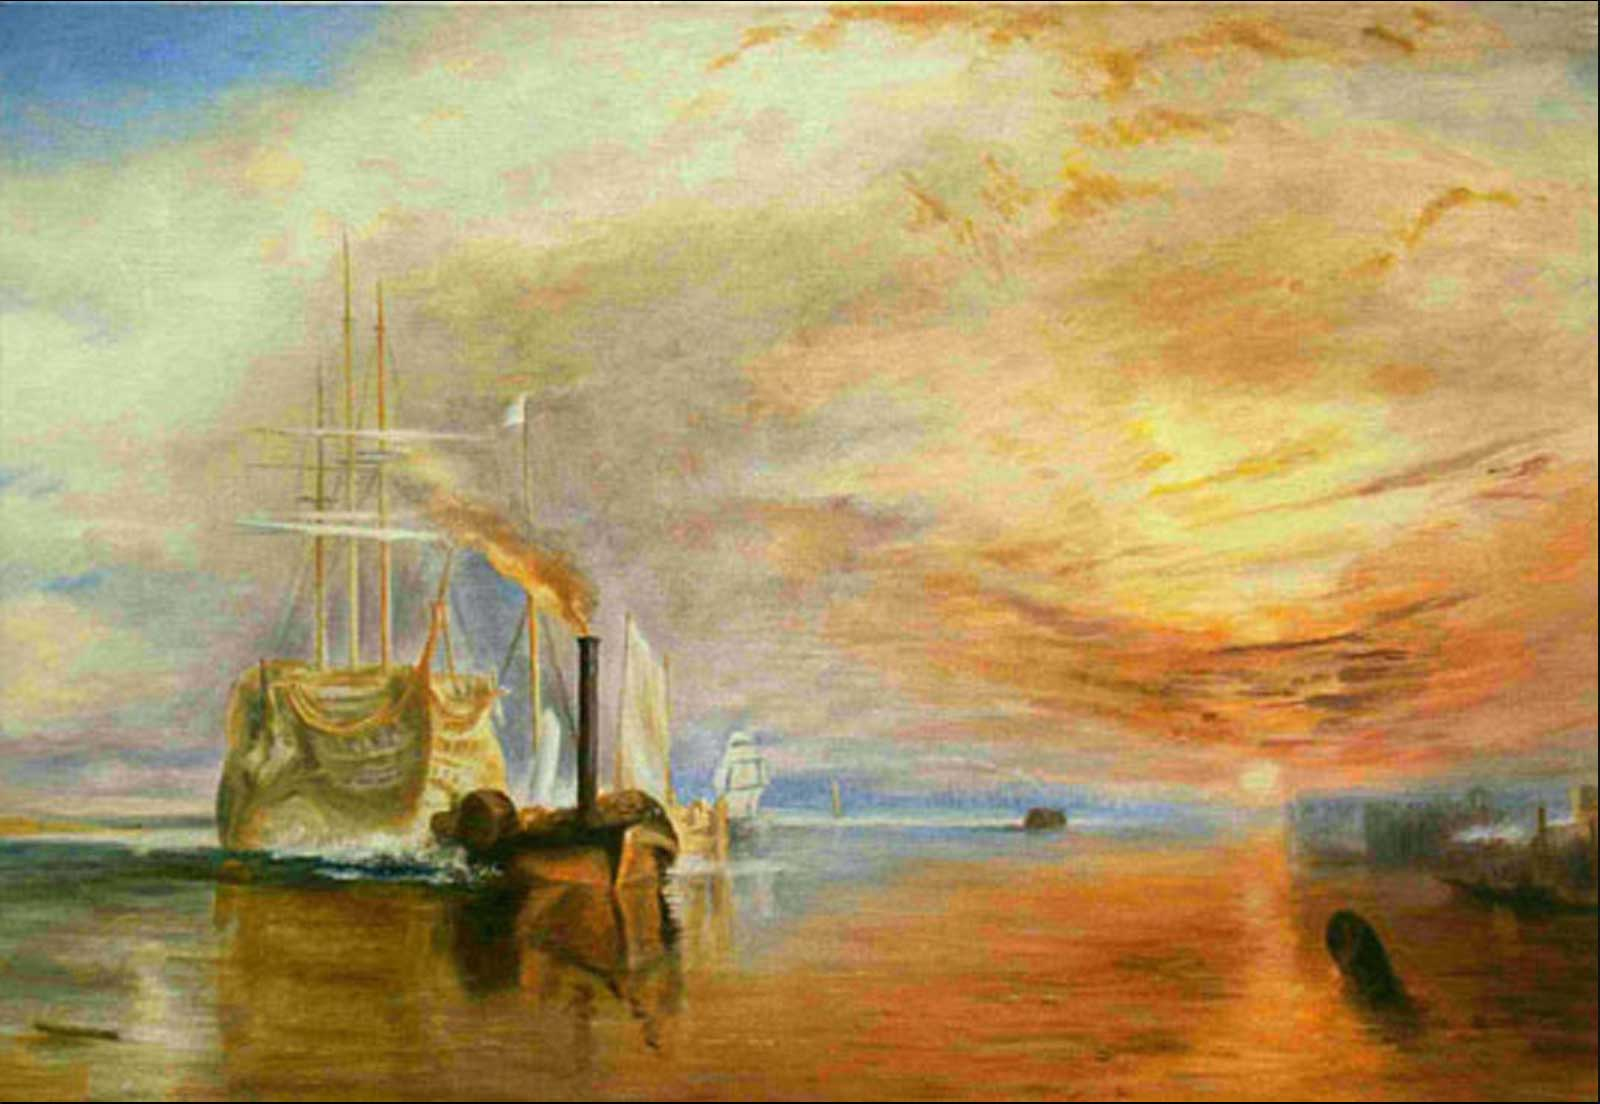 Turner copy oil painting on canvas landscape